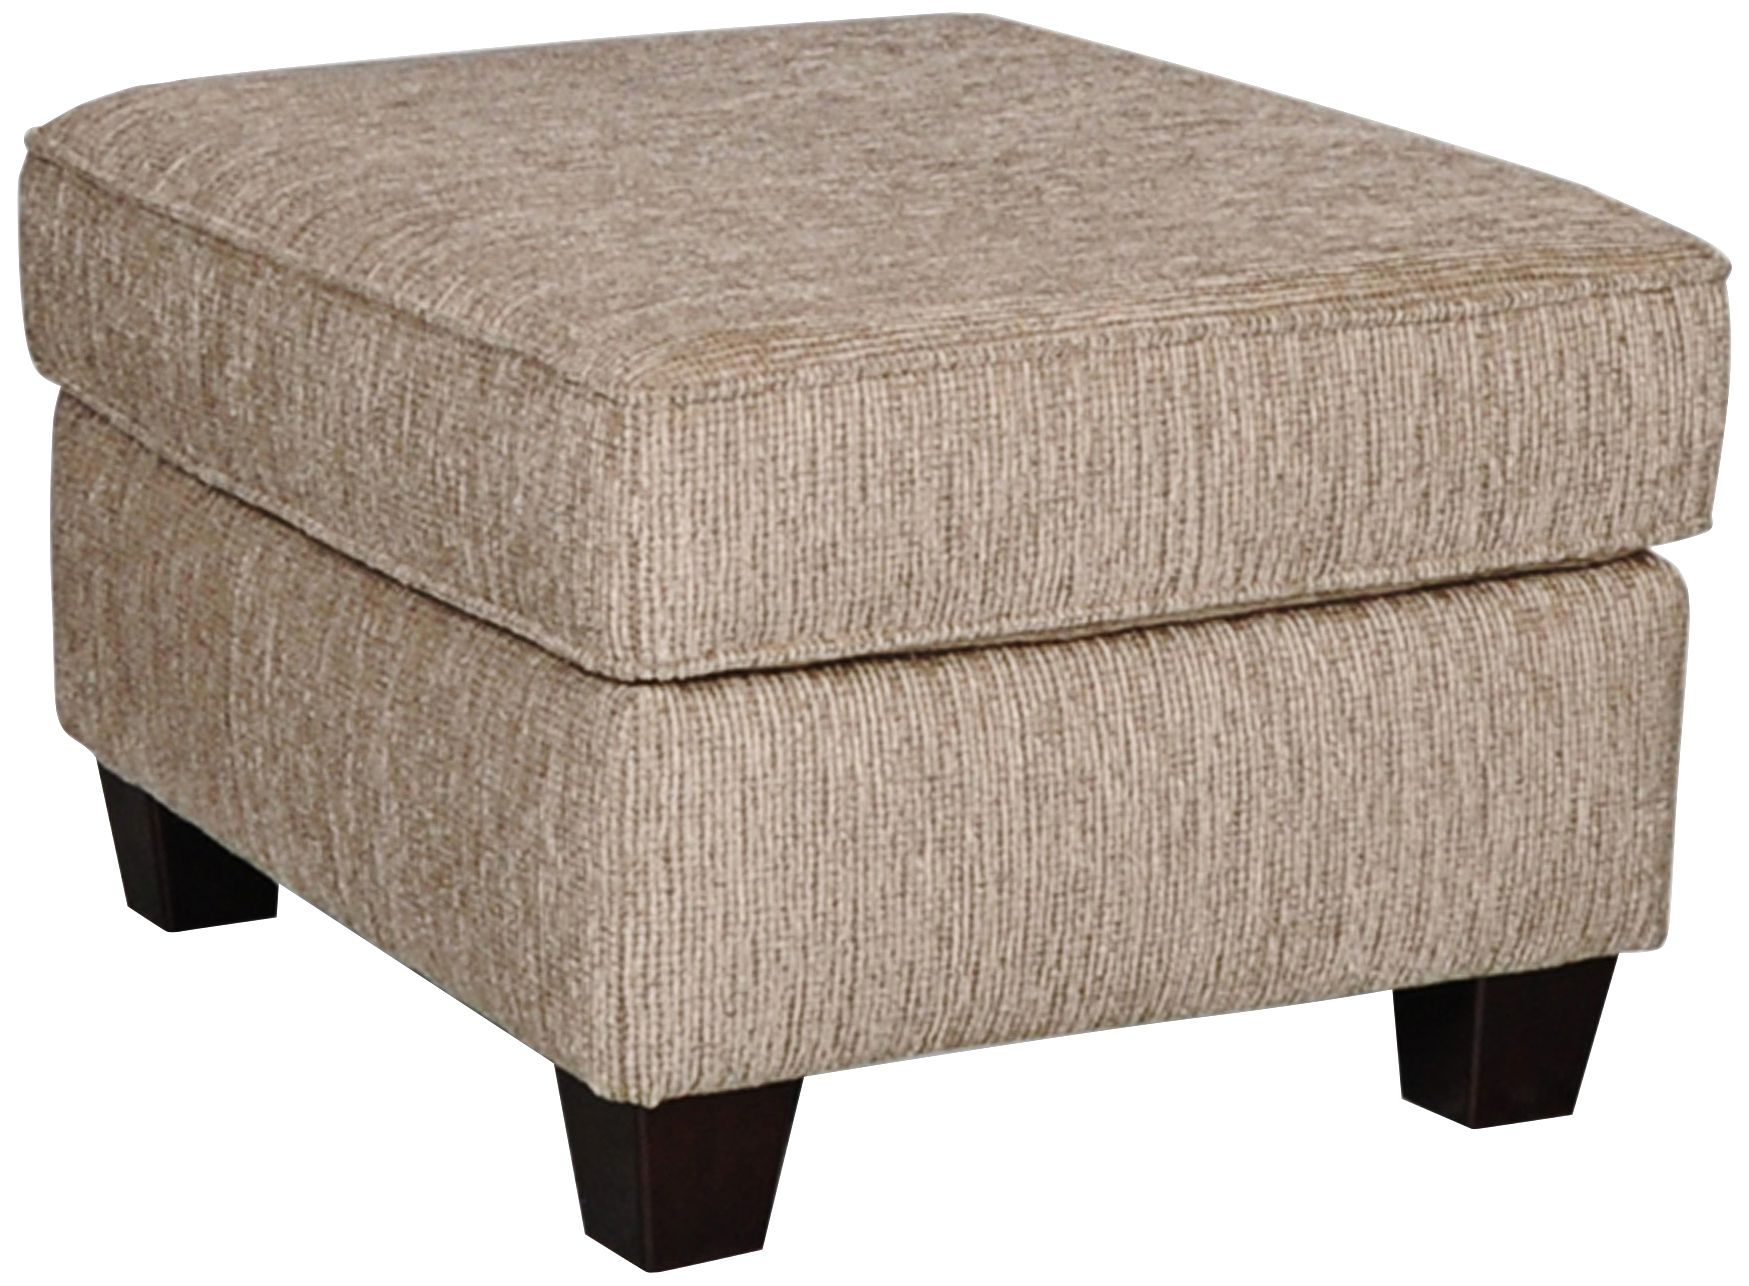 sofab angel ii upholstered pewter chenille ottoman - Upholstered Ottoman